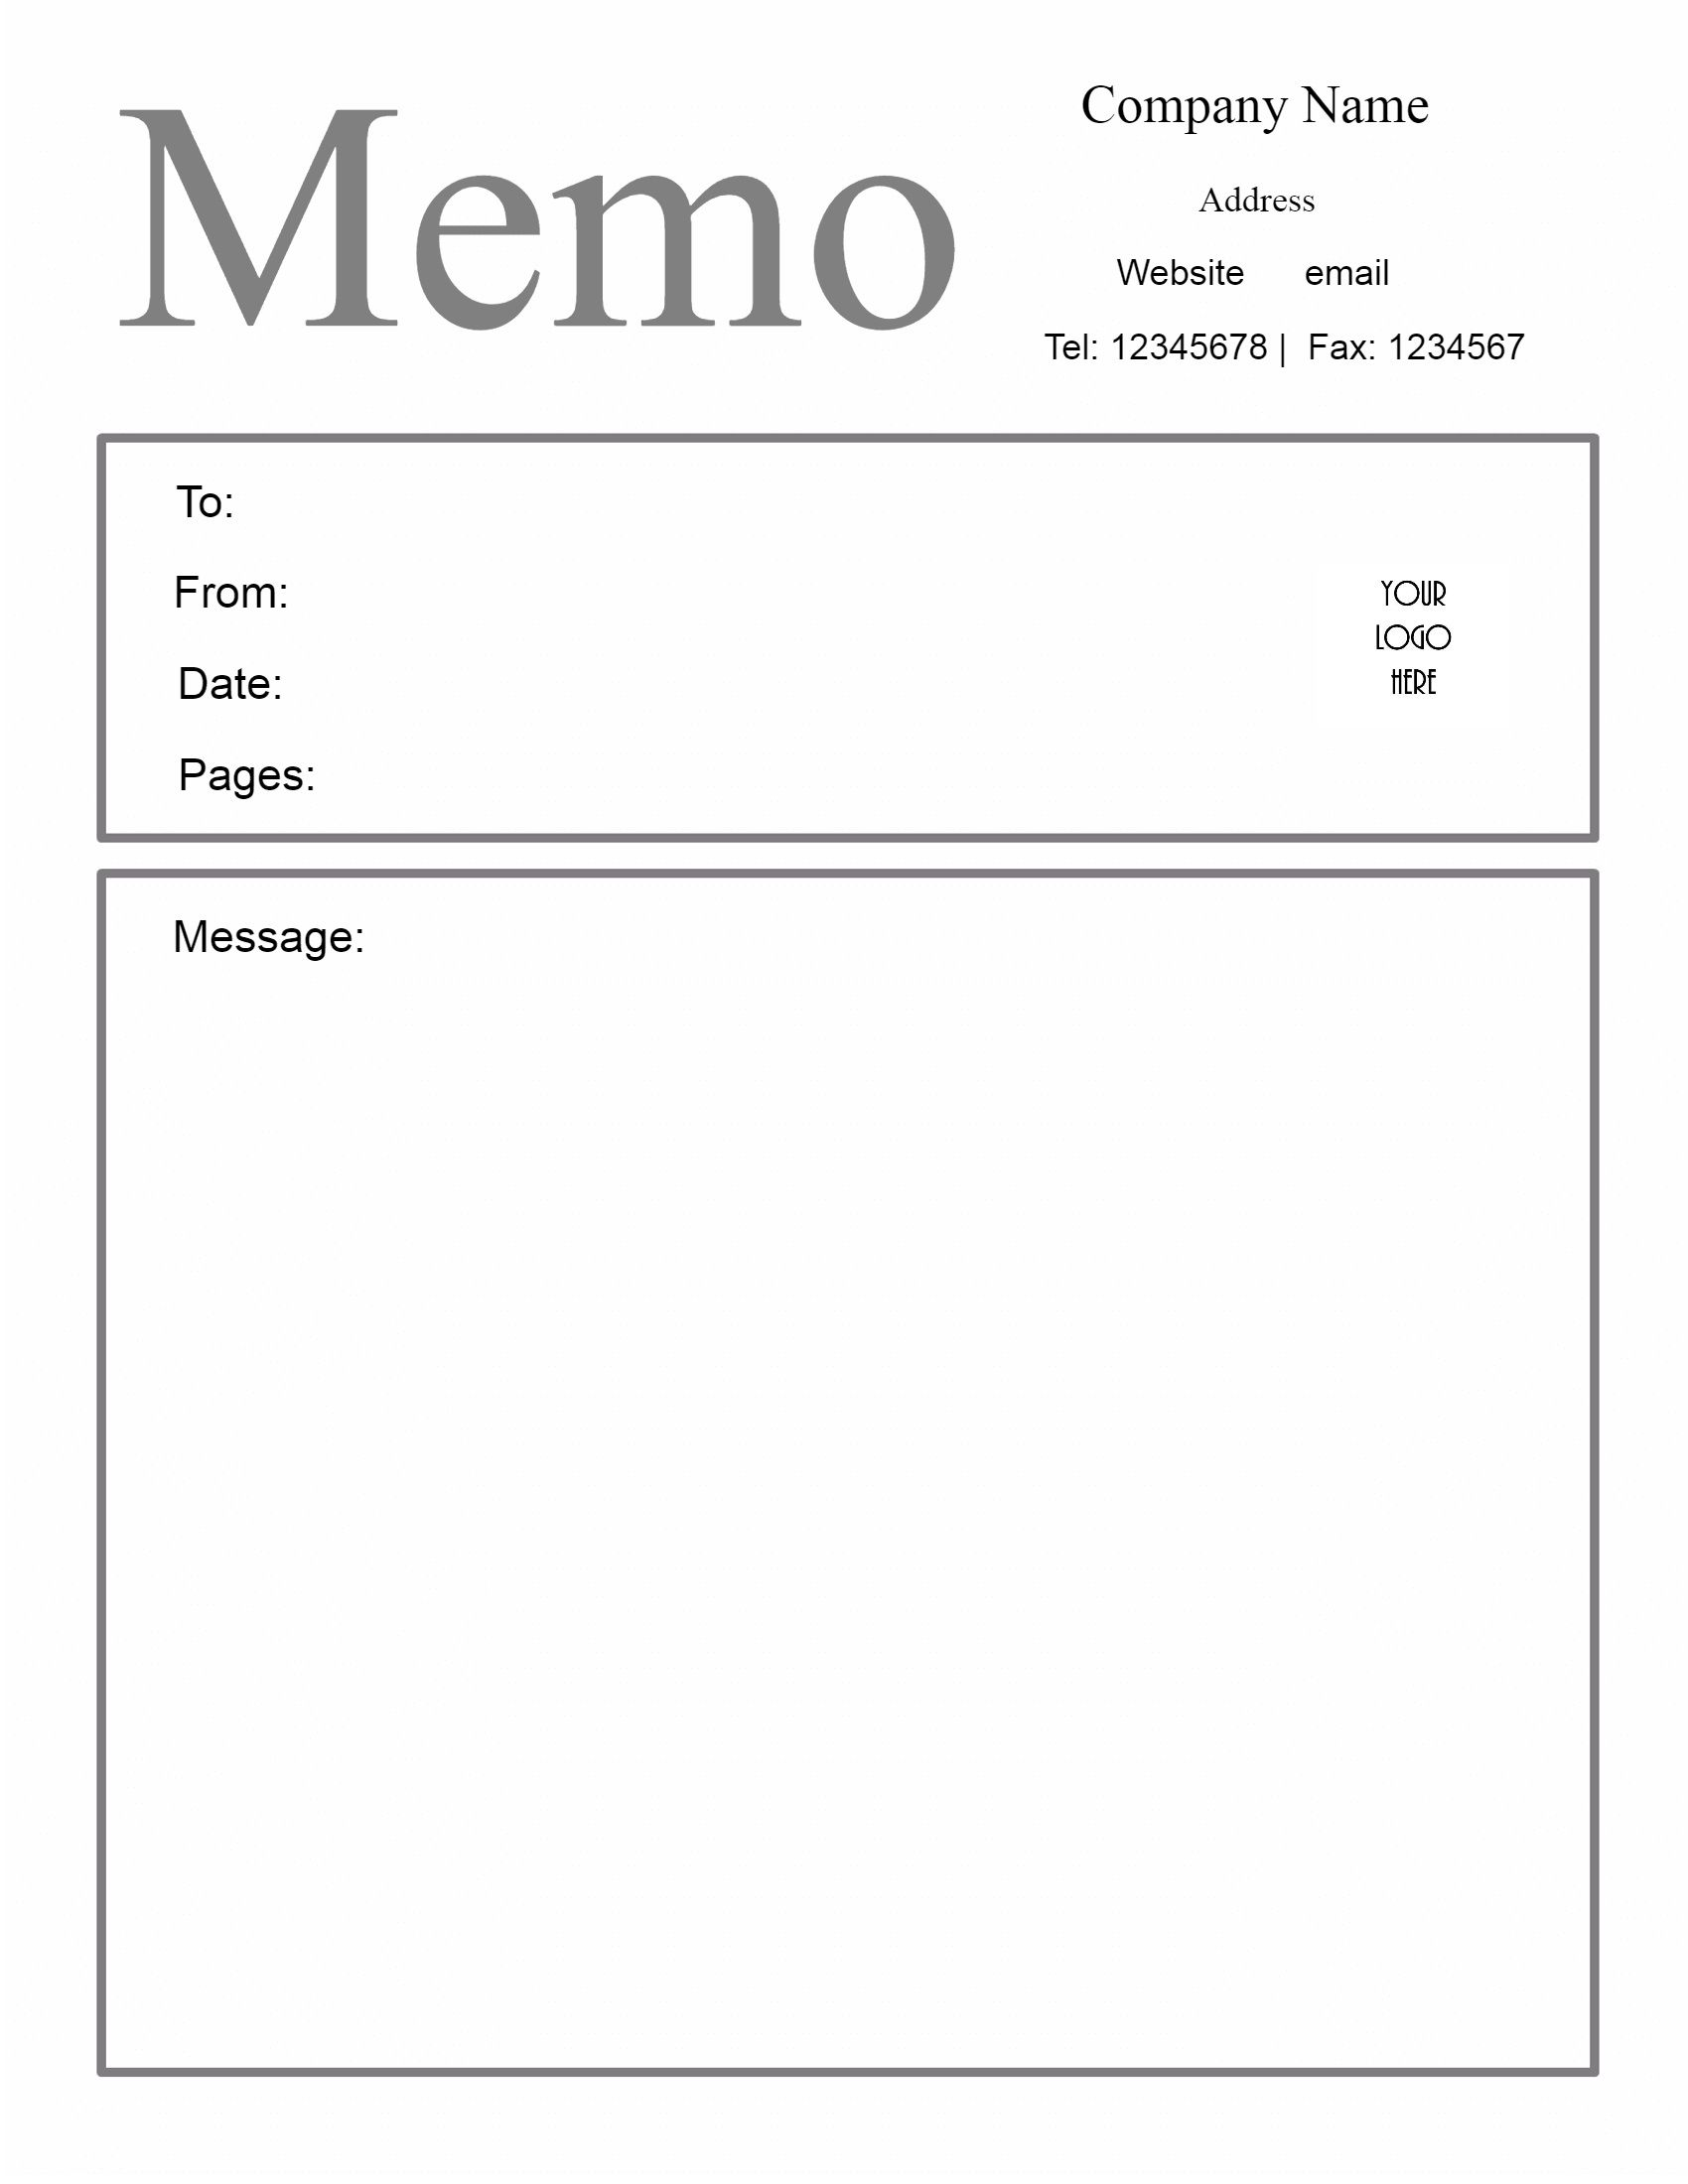 009 Outstanding Microsoft Word Memo Template High Definition  Professional 2010 Free LegalFull